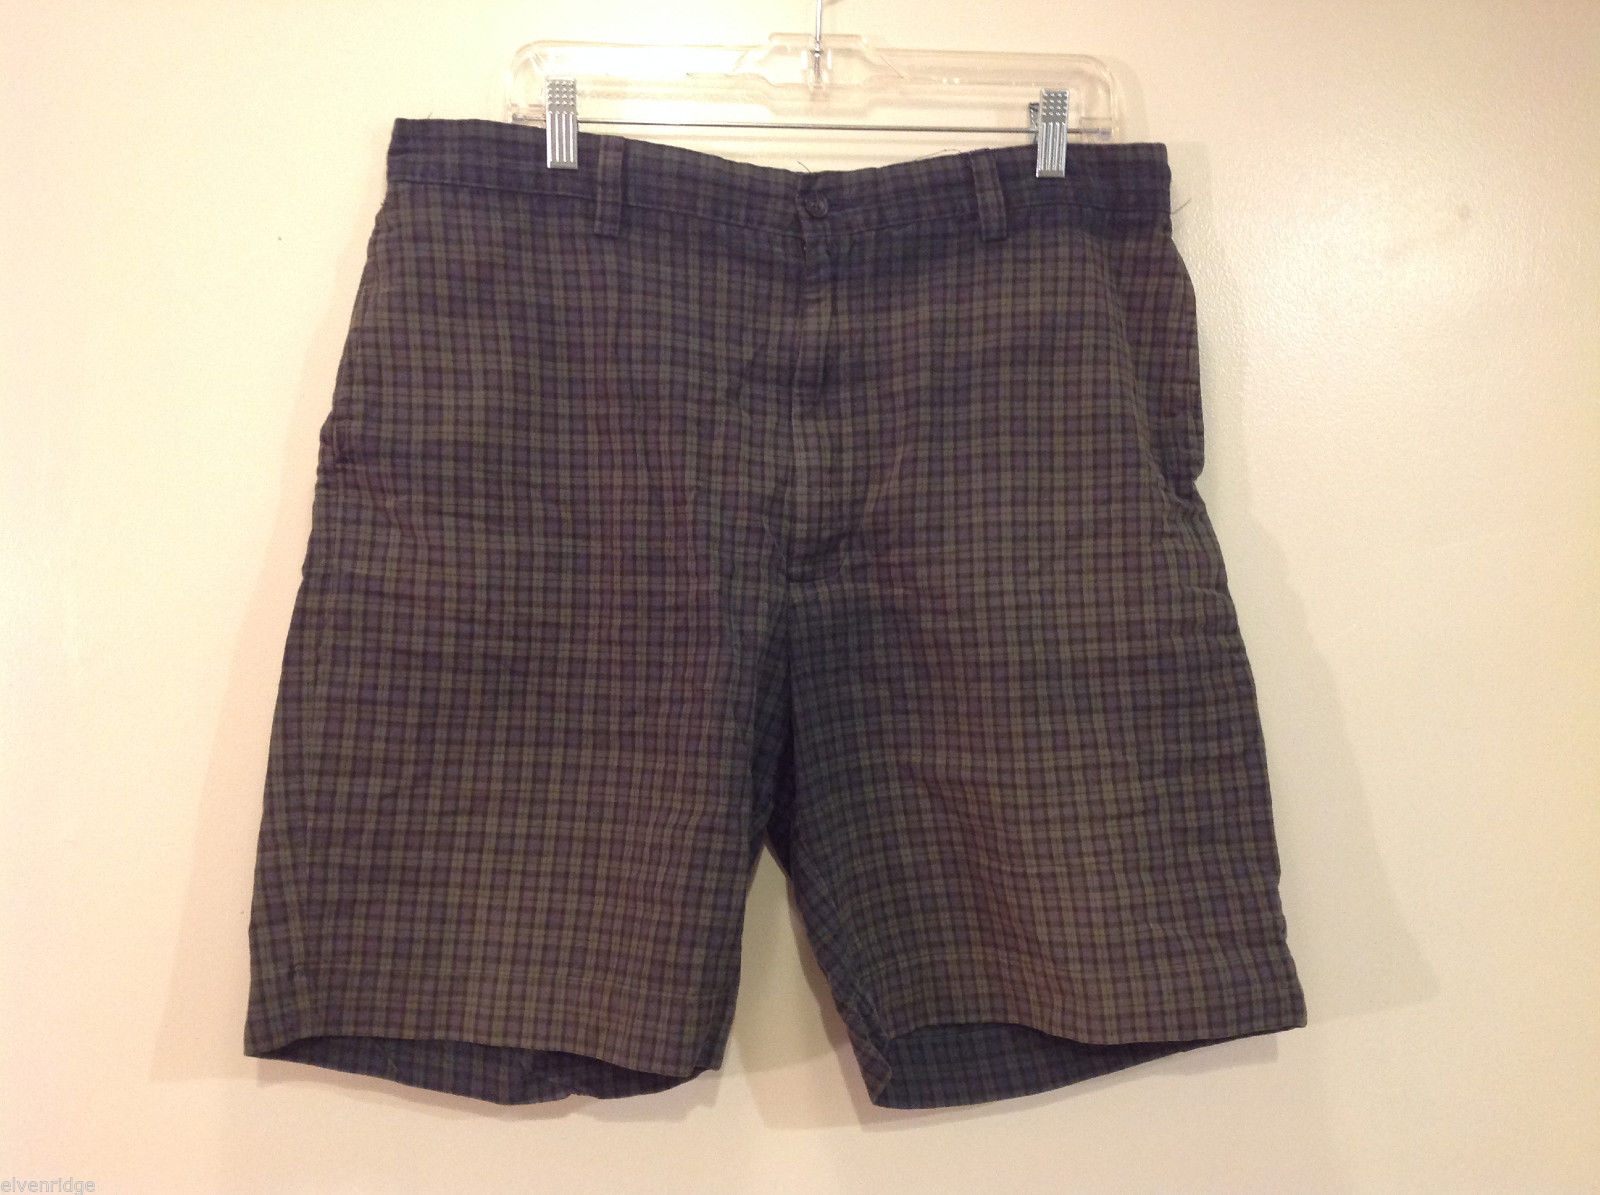 Sonoma Jeans Mens Green Blue Plaid 100% Cotton Shorts, Size 36 with pockets